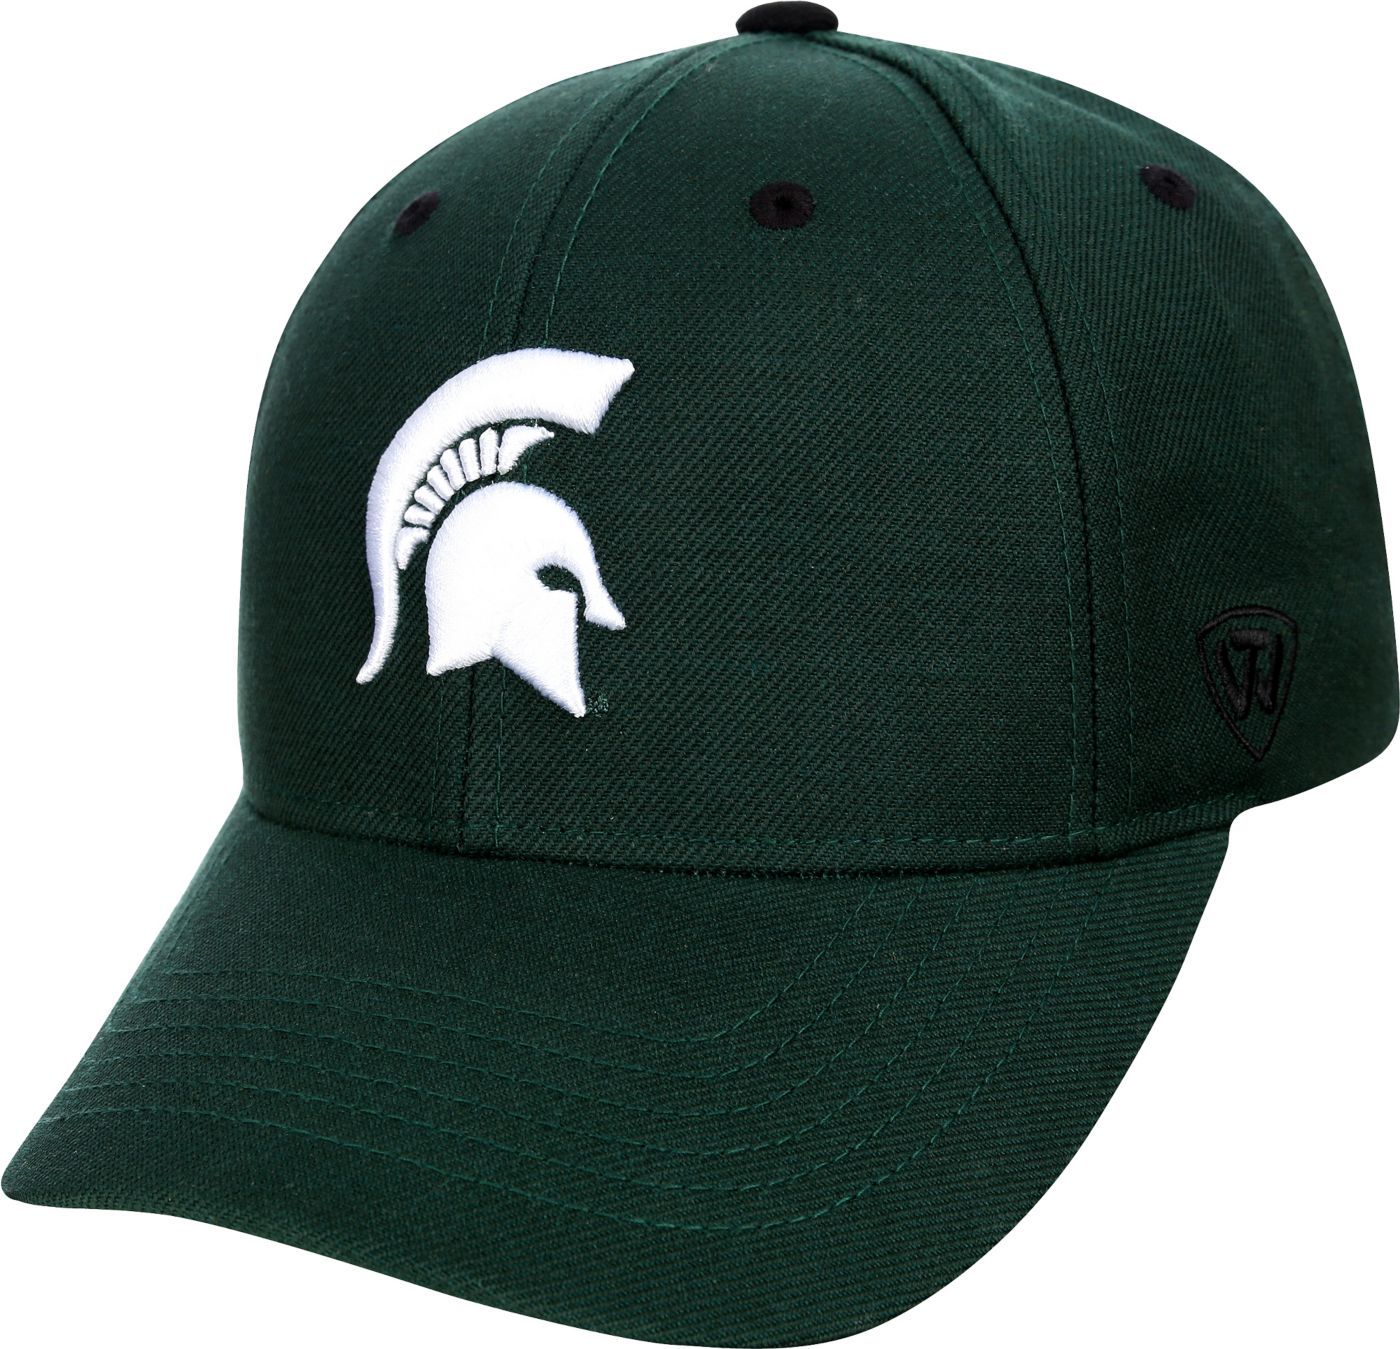 Top of the World Men's Michigan State Spartans Green Triple Threat Adjustable Hat